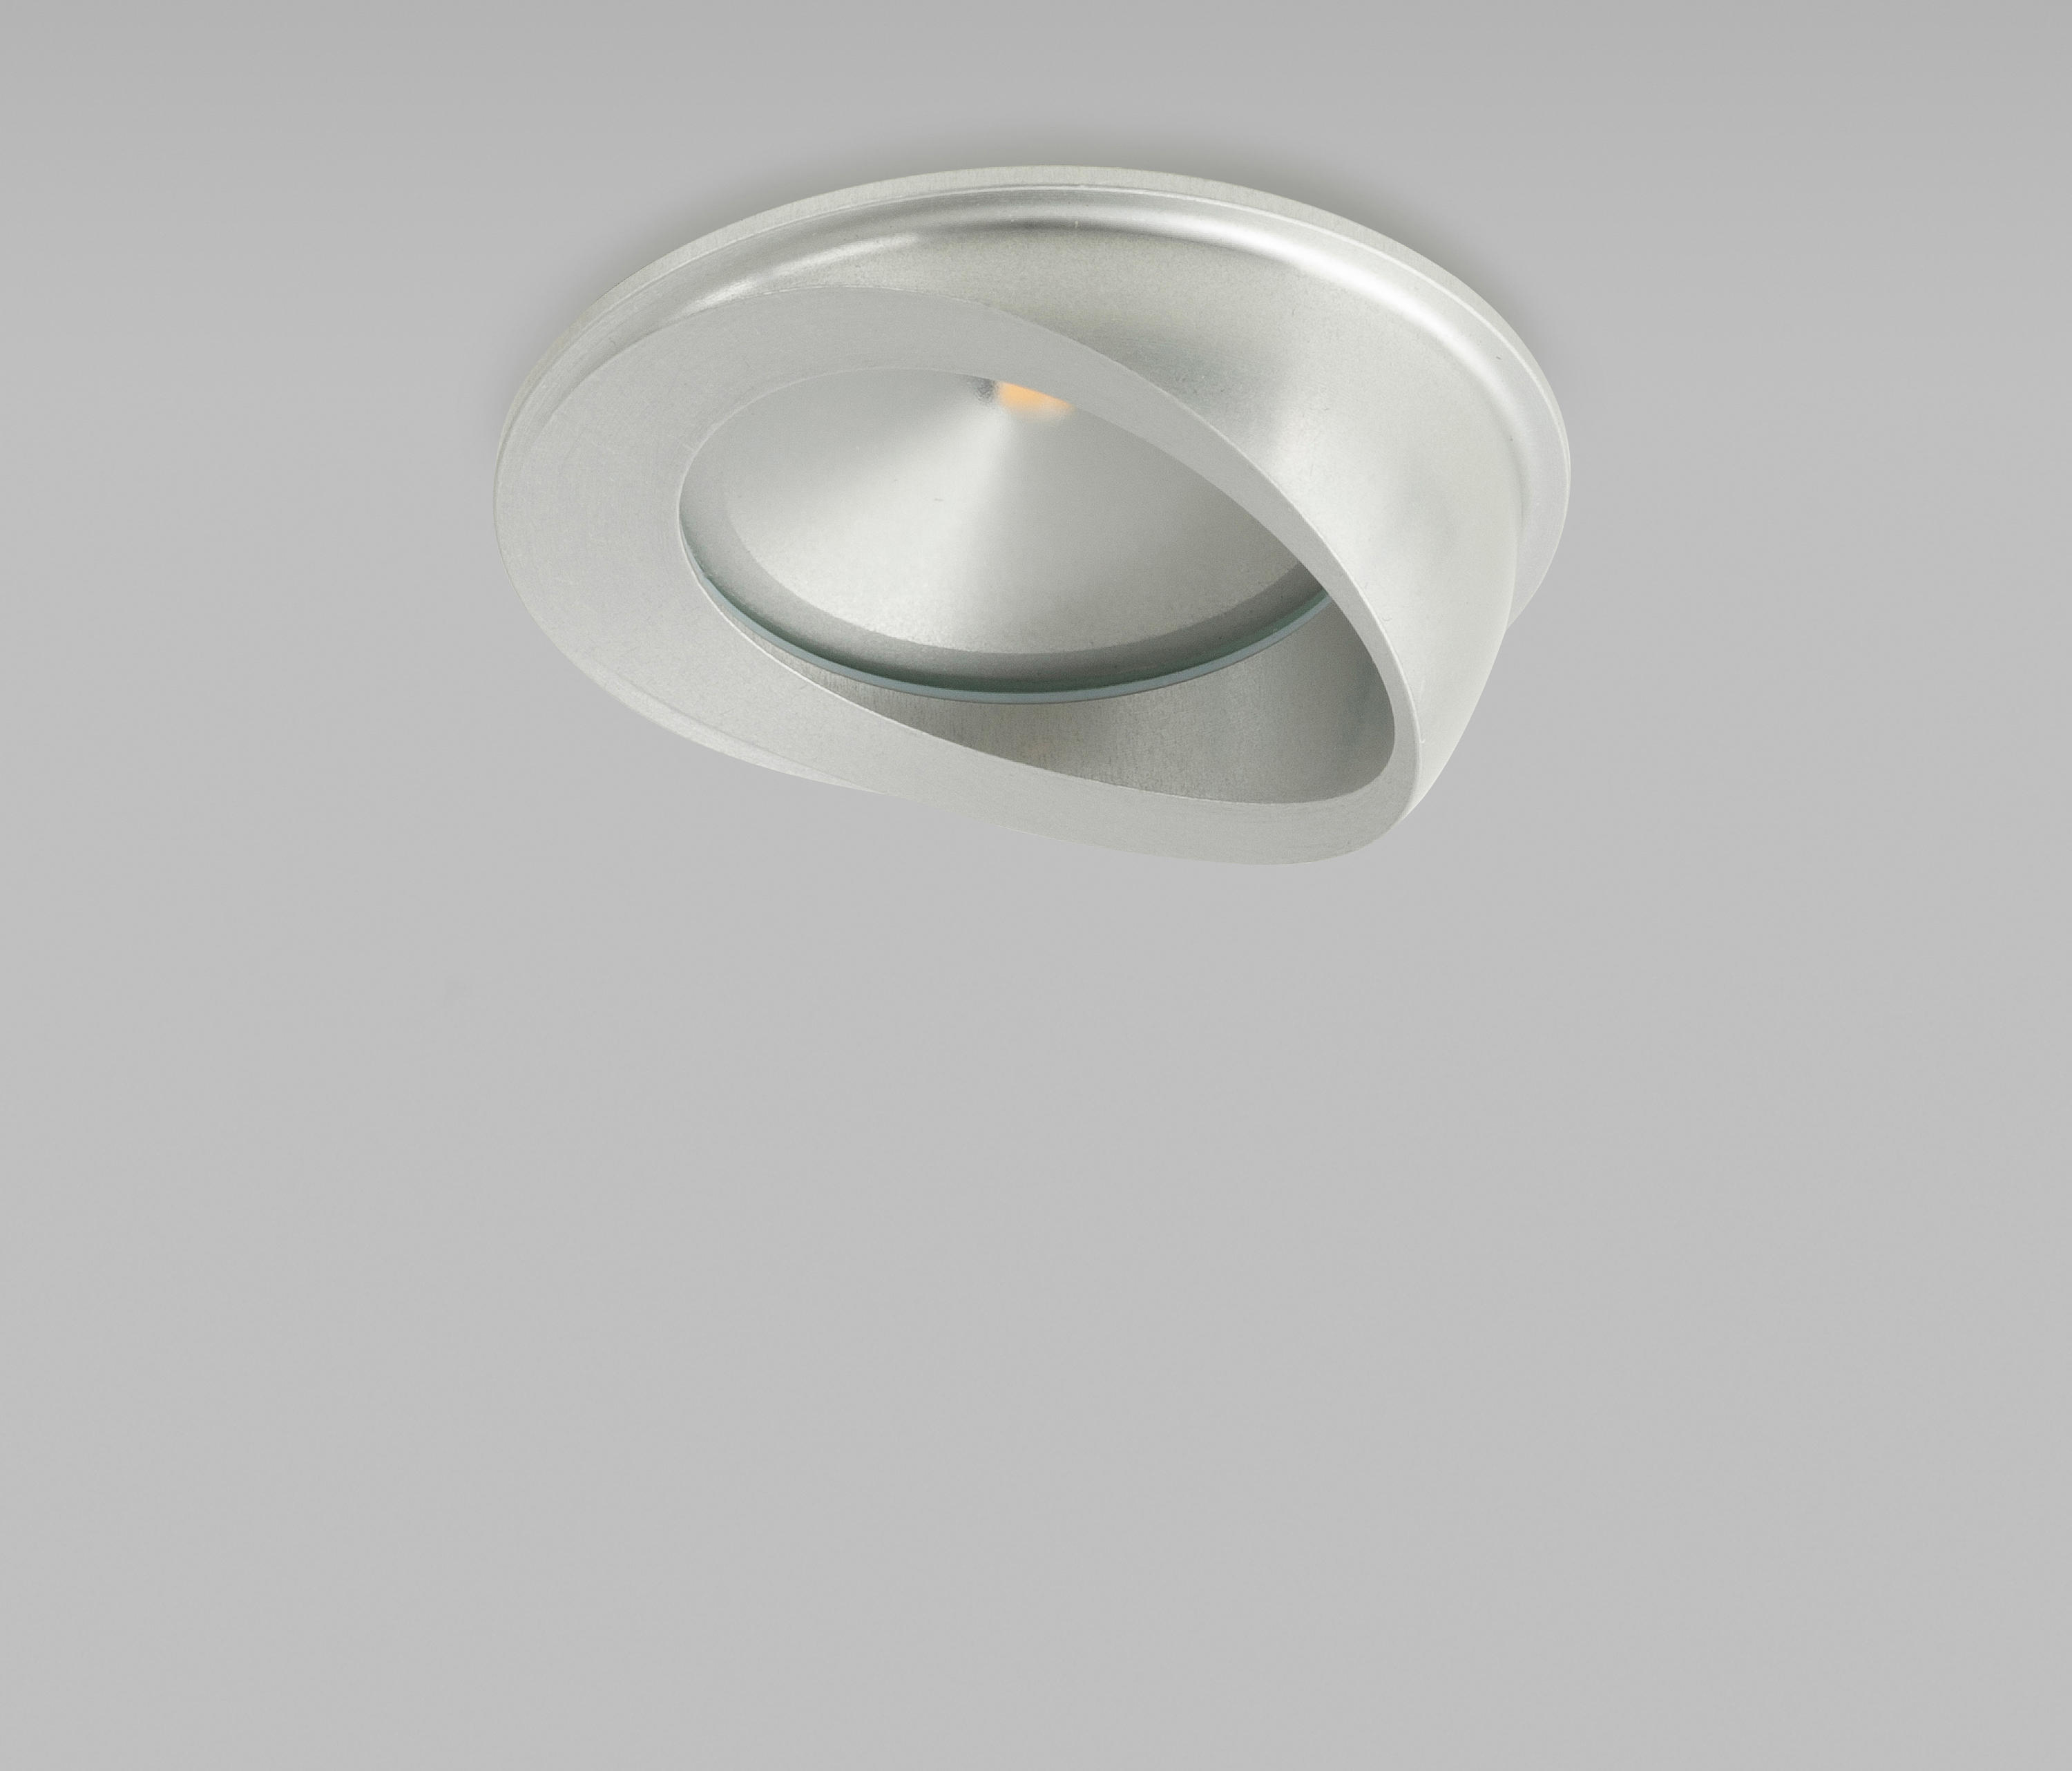 Lighting Basement Washroom Stairs: Recessed Ceiling Lights From